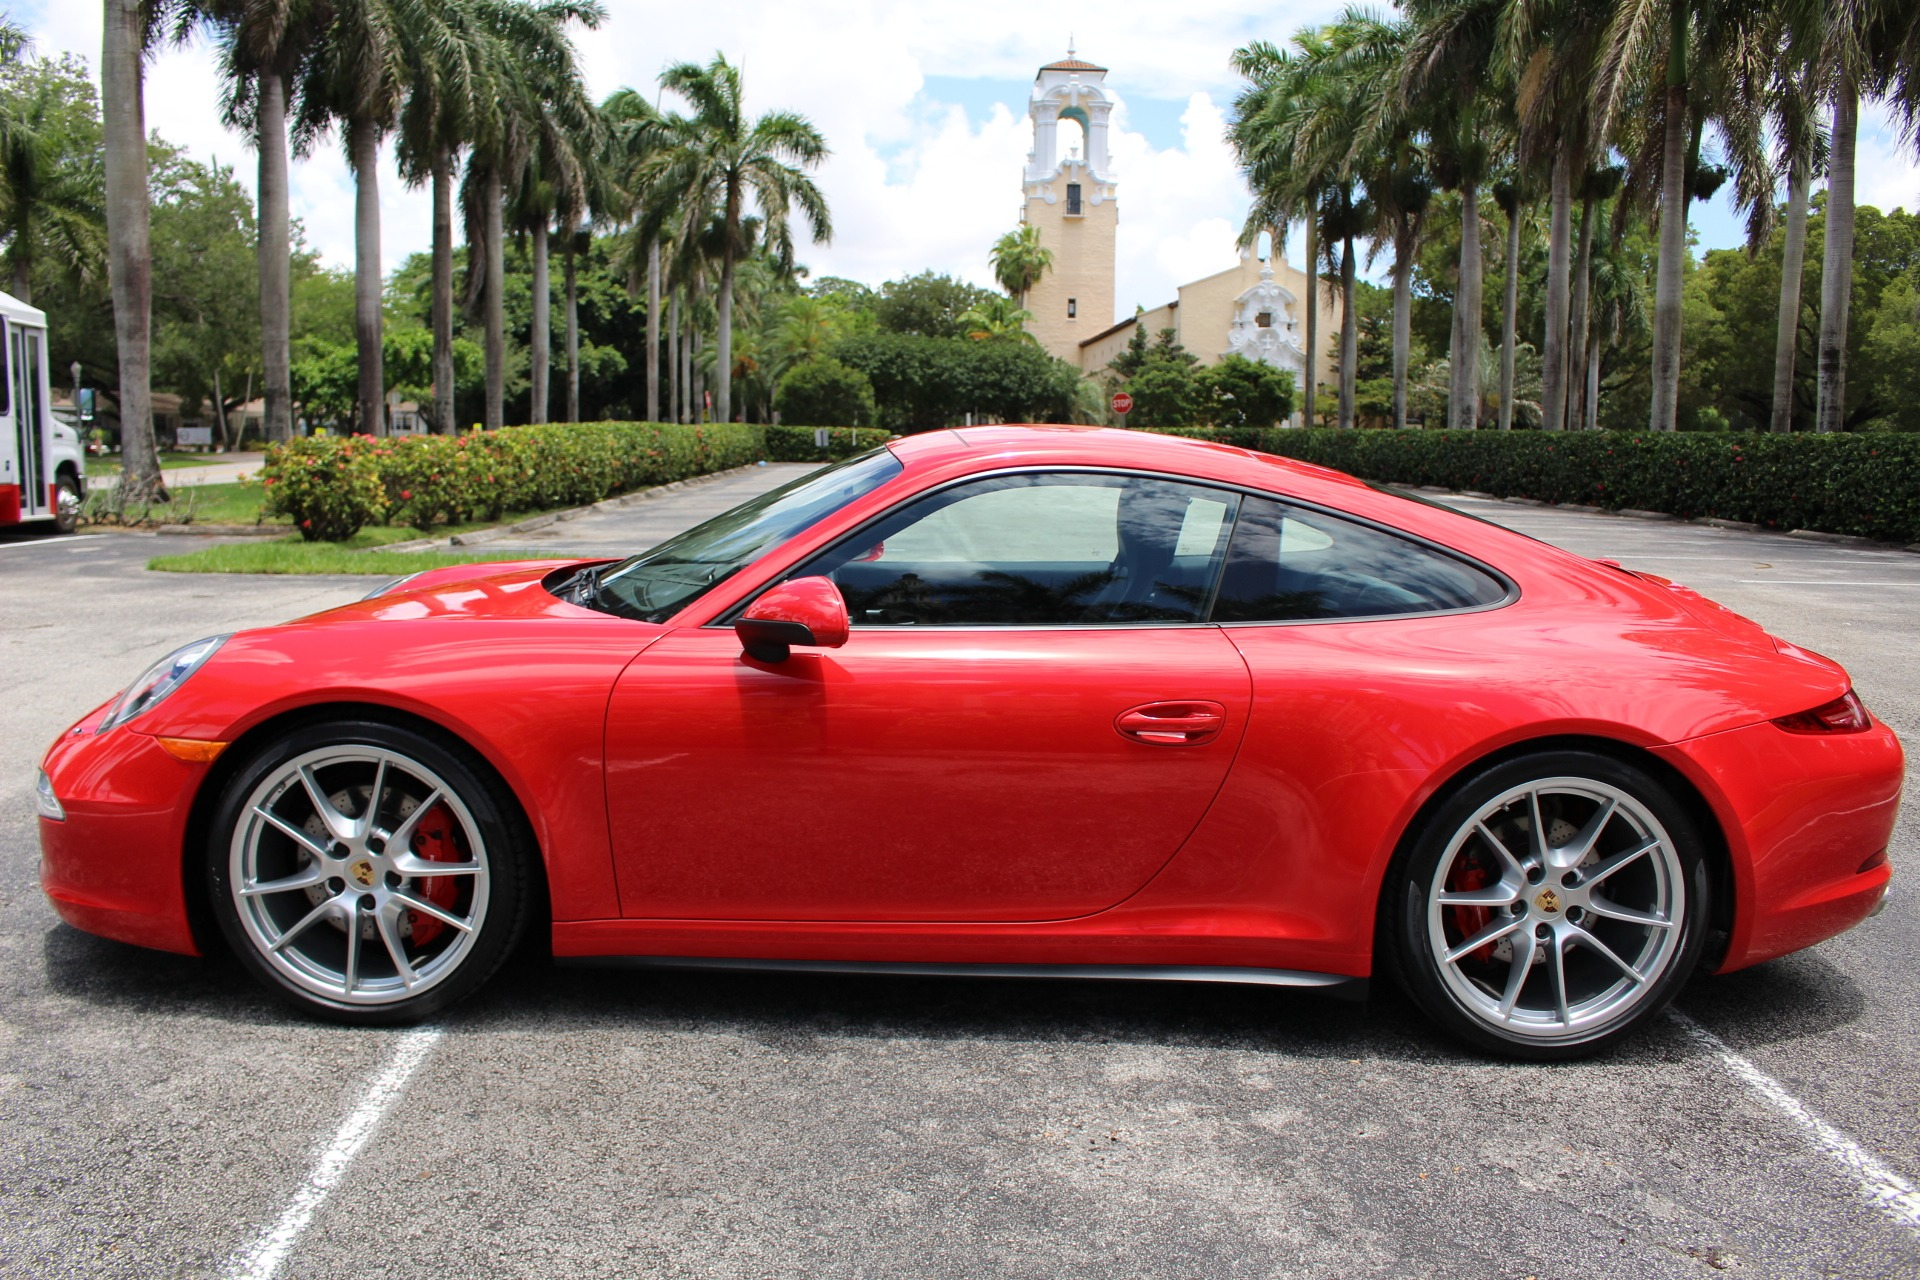 Used 2014 Porsche 911 Carrera 4S for sale Sold at The Gables Sports Cars in Miami FL 33146 3